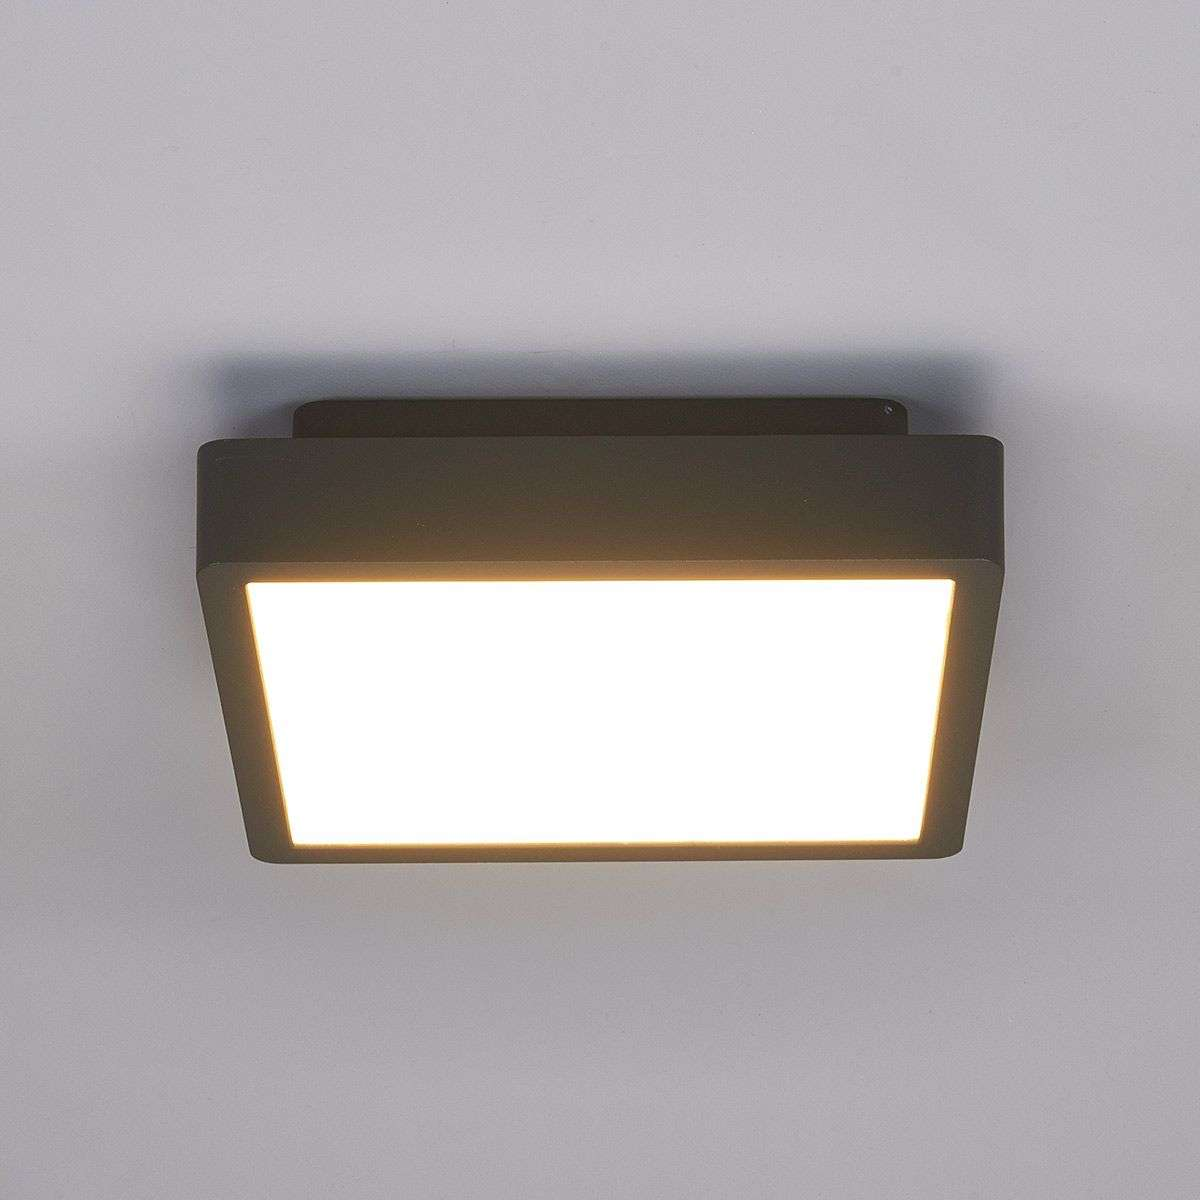 Outdoor led ceiling lights uk outdoor lighting ideas rectangular led outdoor ceiling light talea aloadofball Image collections